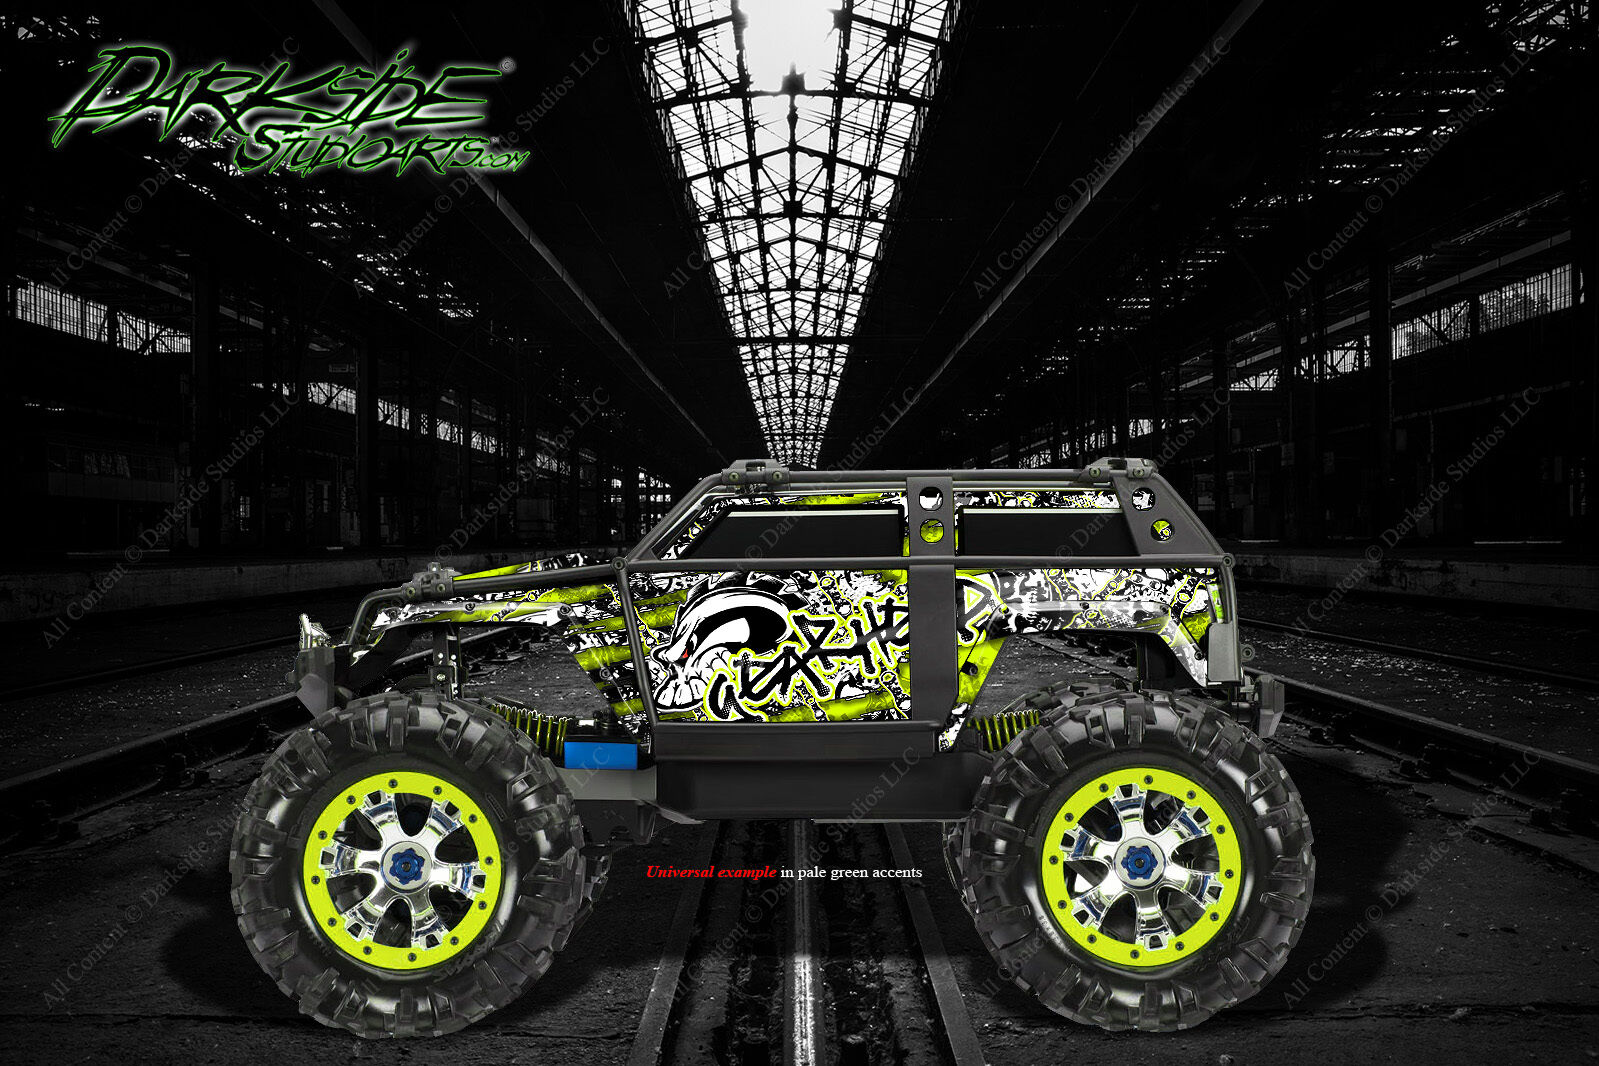 TRAXXAS SUMMIT GRAPHICS WRAP DECALS  GEAR HEAD  FOR OEM BODY PARTS PALE verde